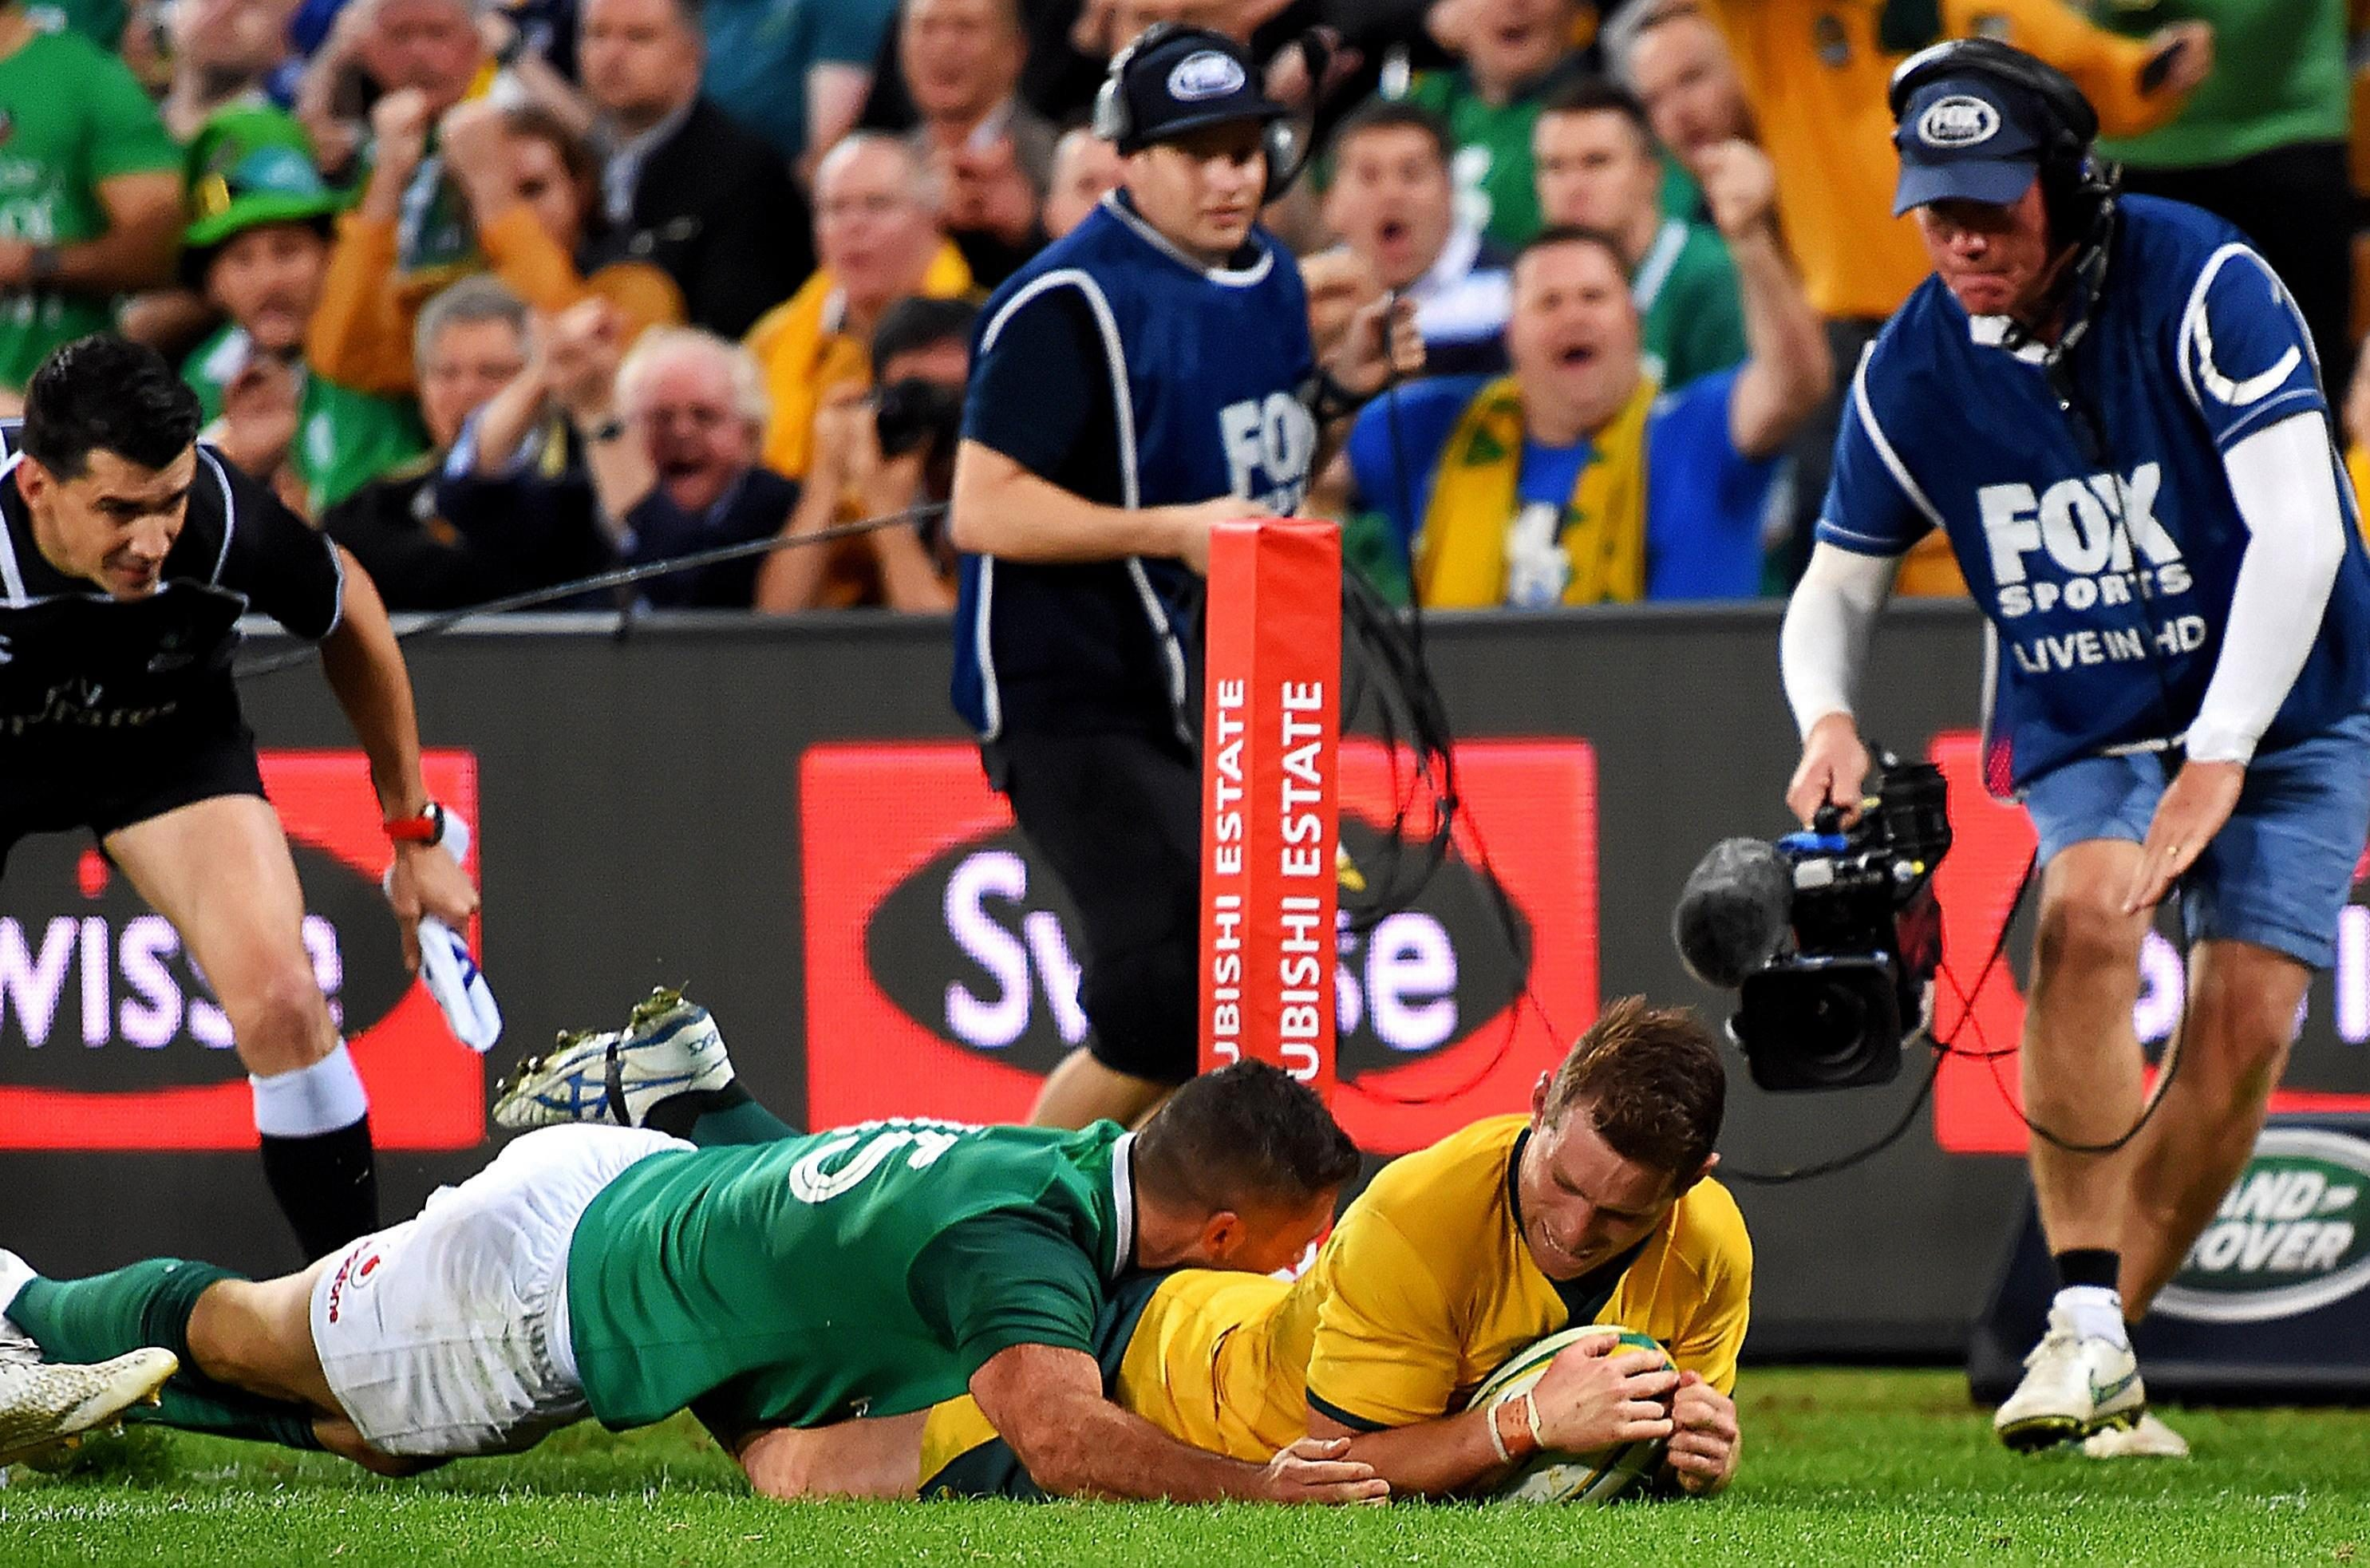 Foley's first-half try capped a superb performance from the Australia No10